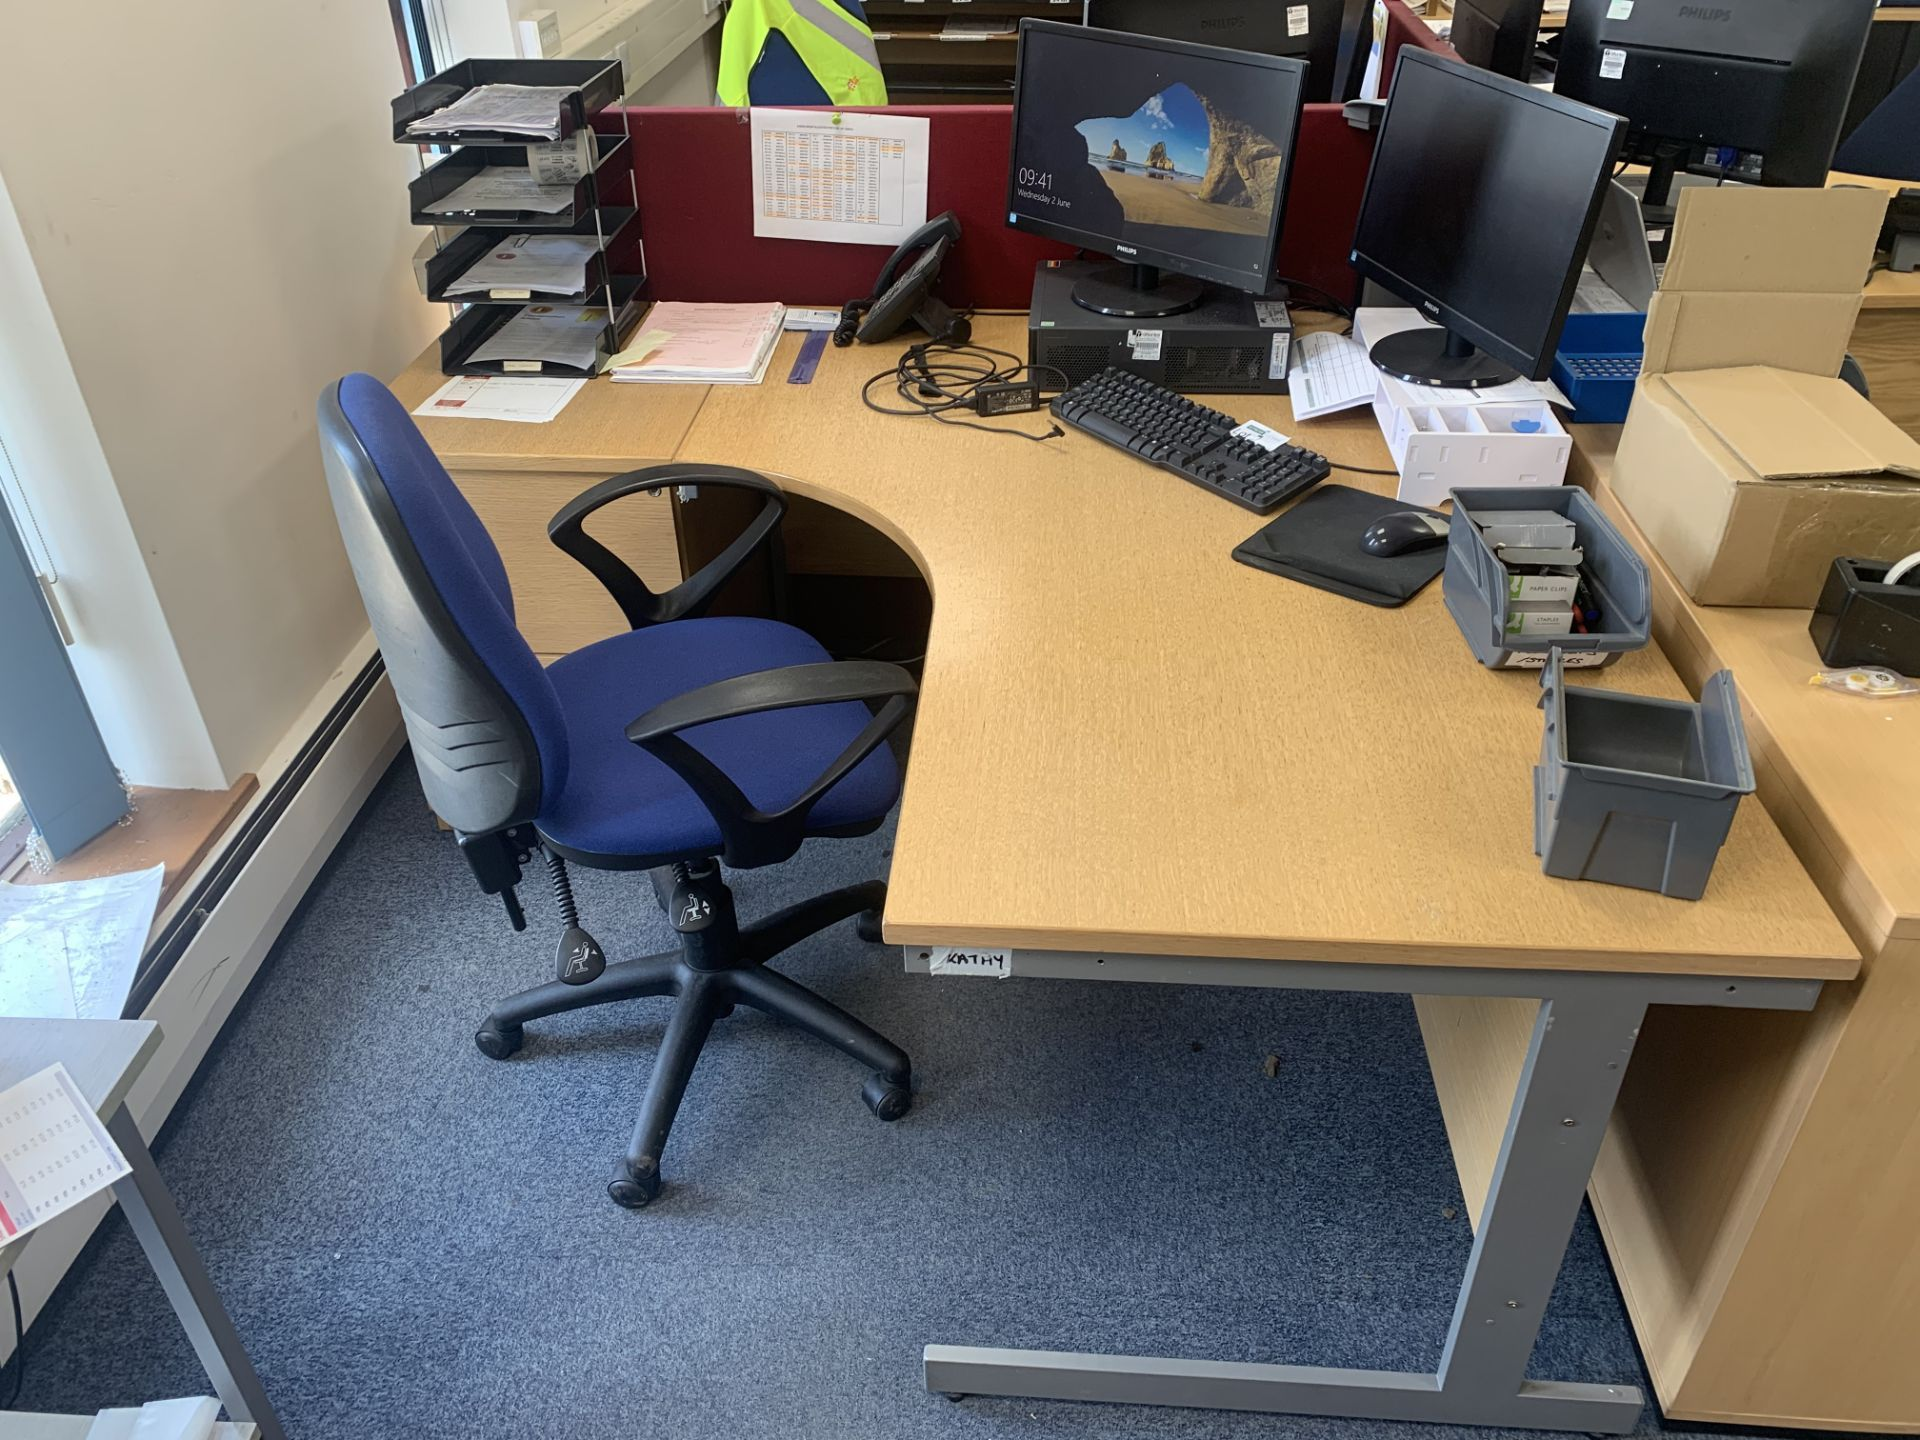 OFFICE DESK 160 X 120CM WITH CHAIR AND DRAWS (12)